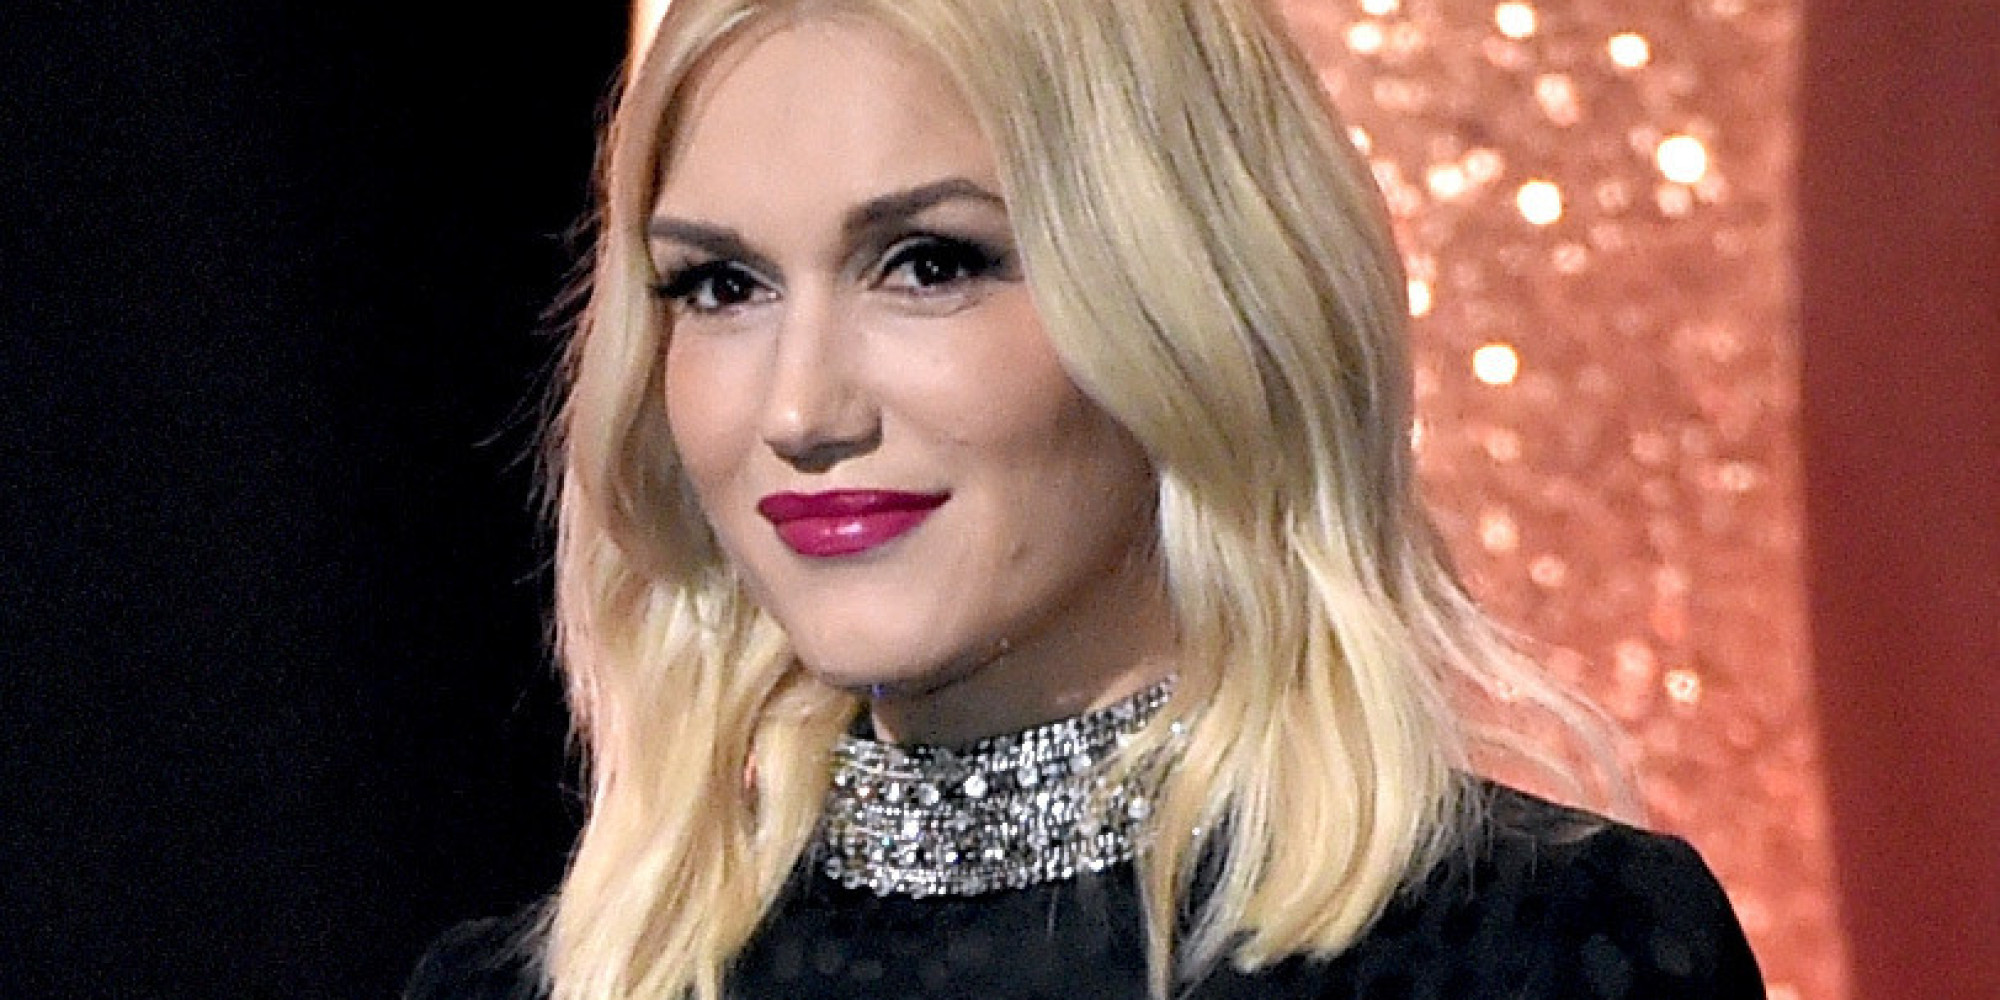 Gwen Stefani Shares A Sweet Breastfeeding Photo On Instagram